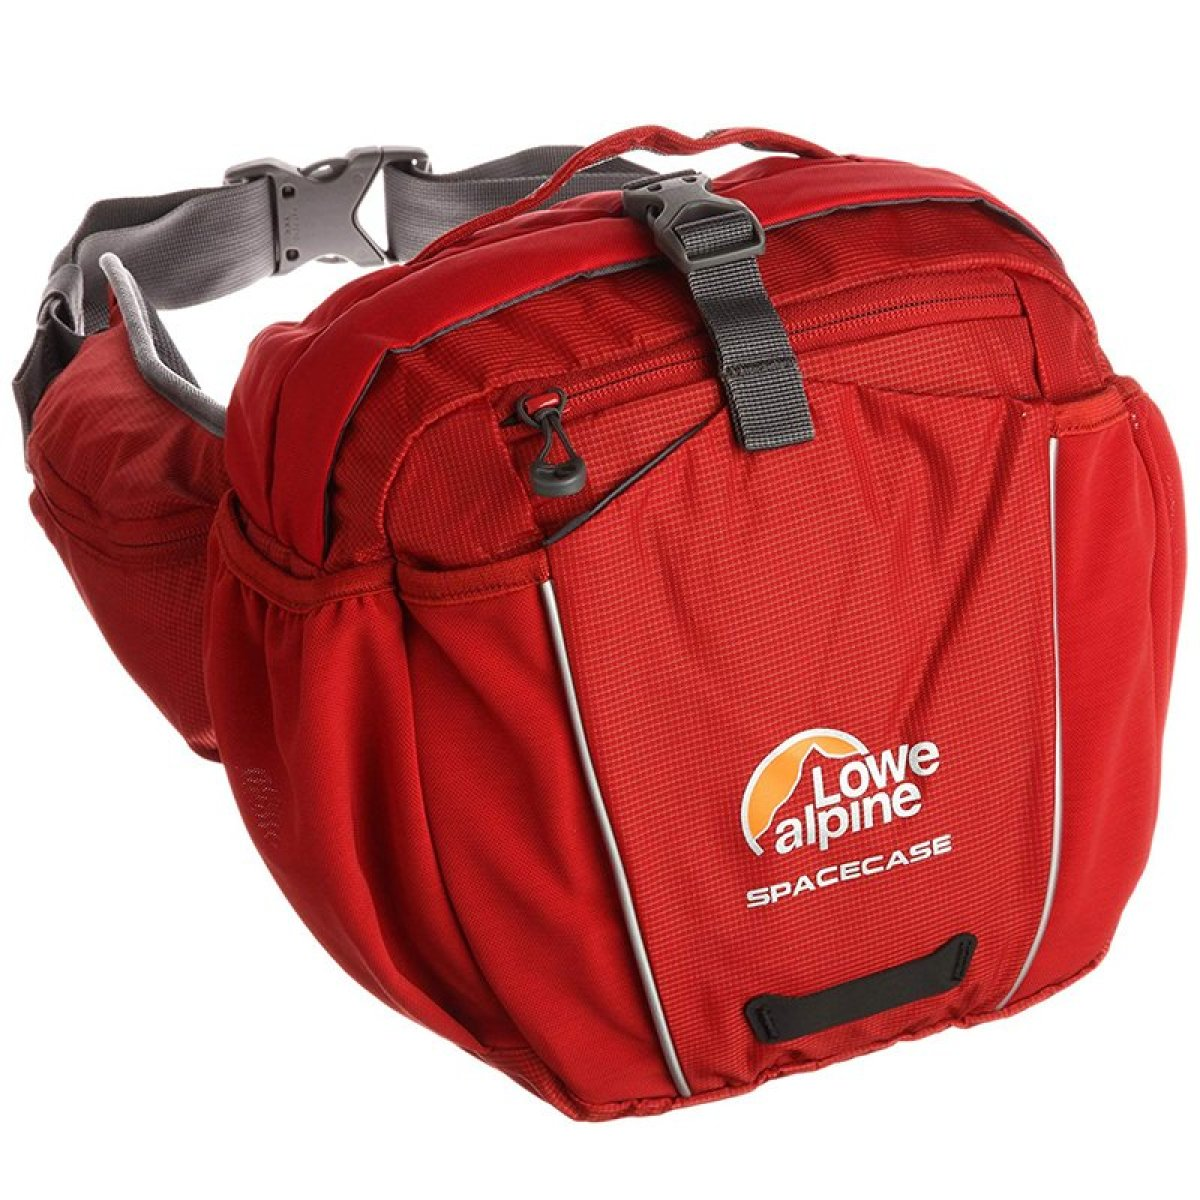 Сумка Lowe Alpine Space Case на пояс Sunset Red LA FAD-38-SUR-U